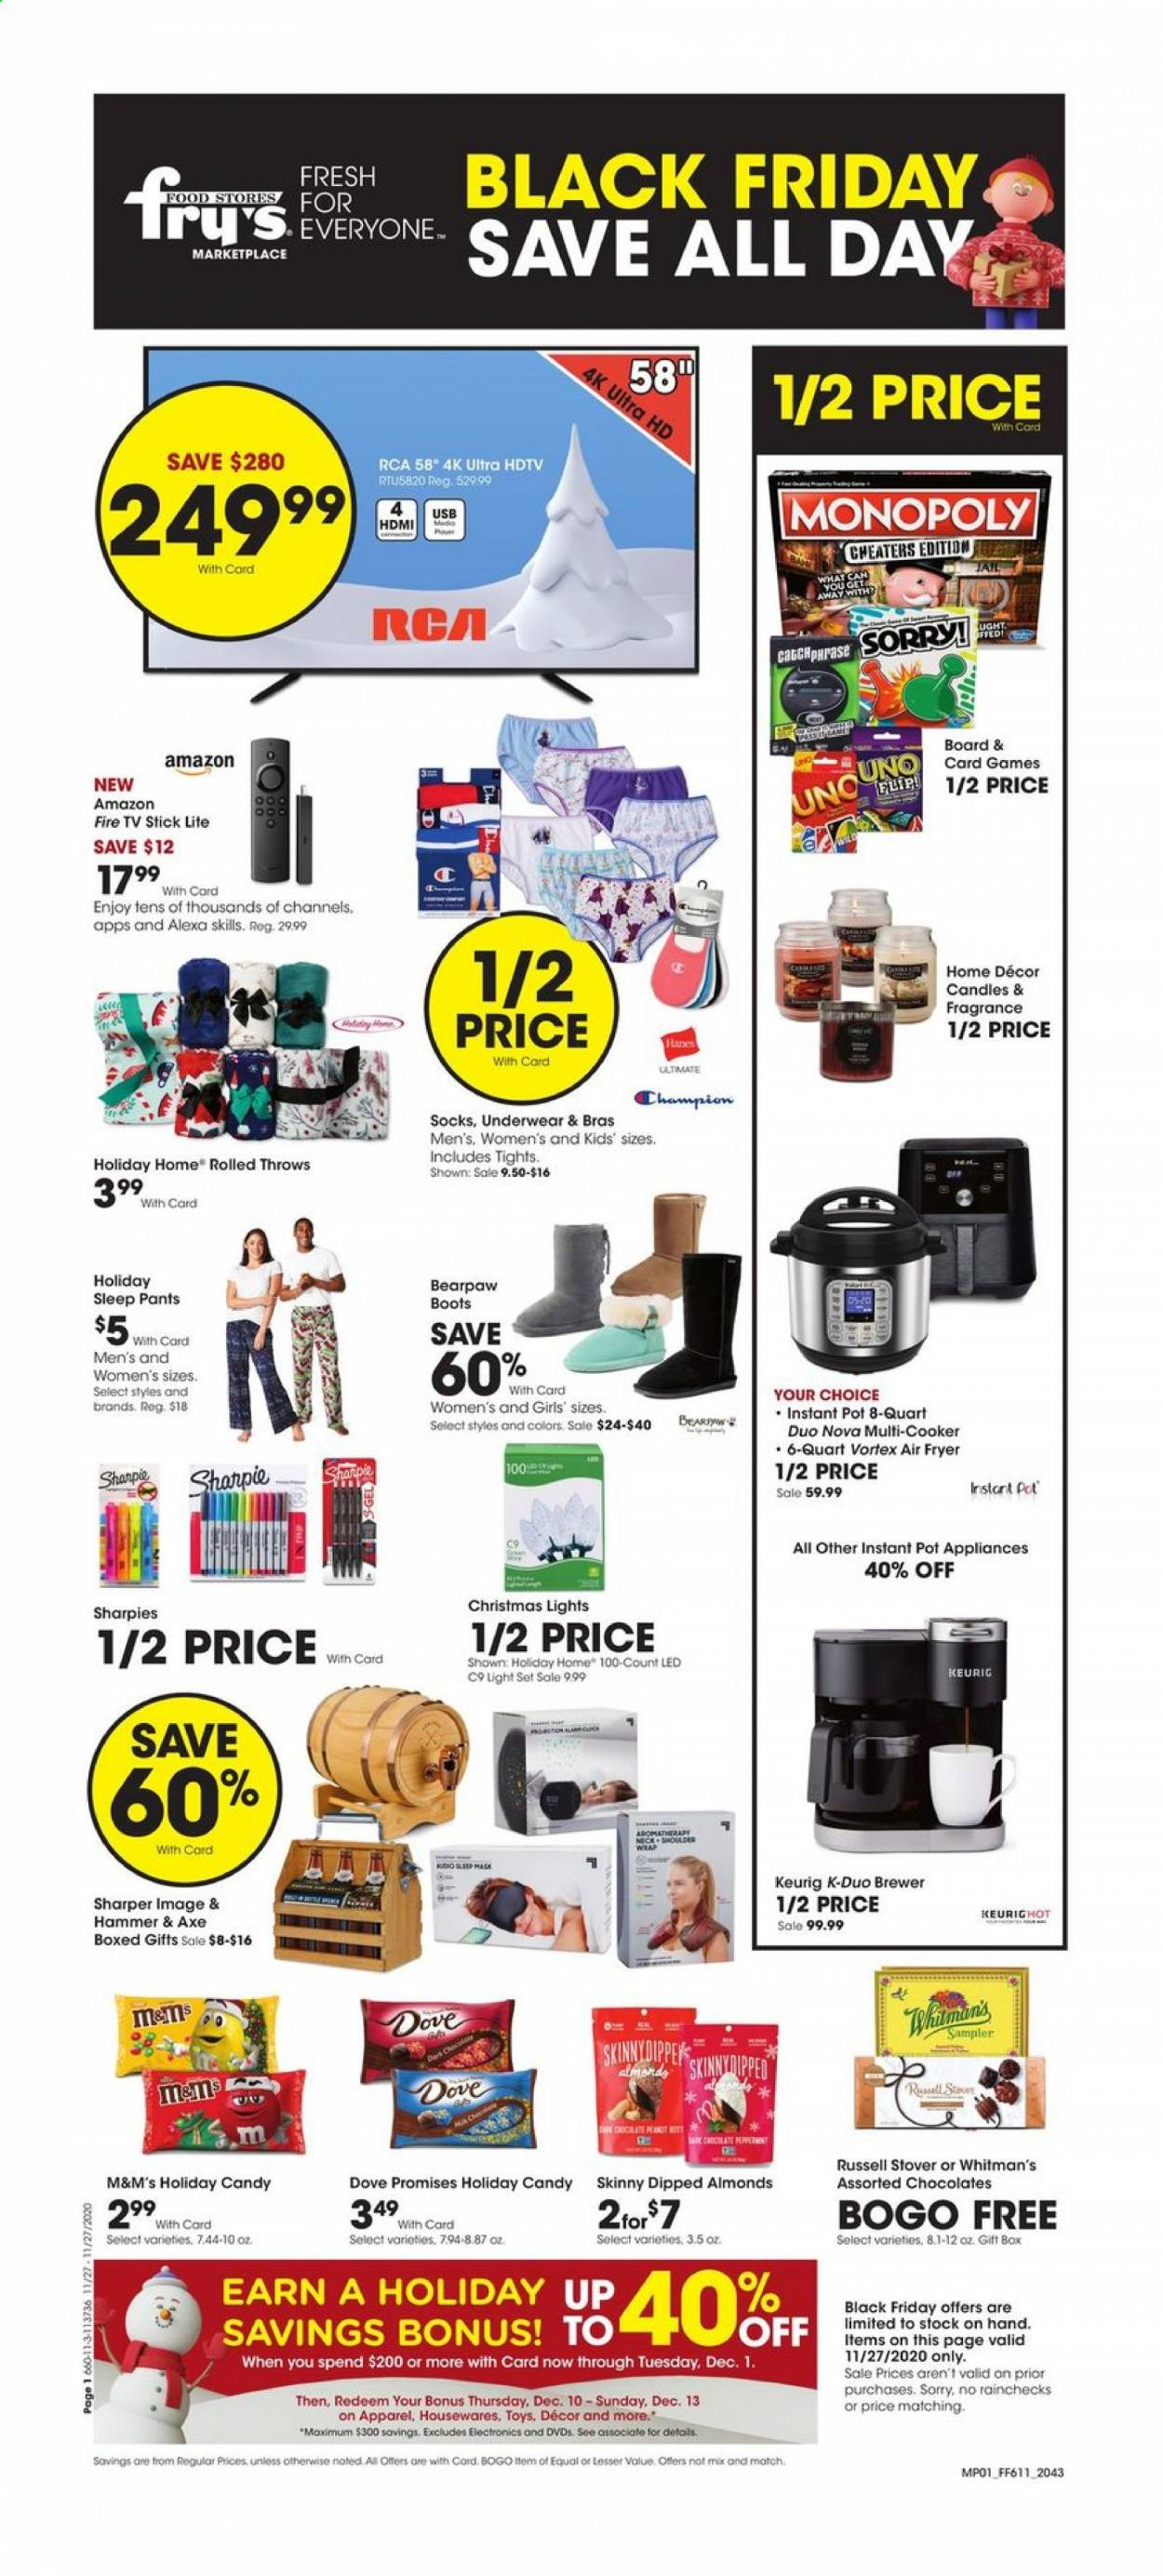 Fry's Flyer - 11.27.2020 - 11.27.2020 - Sales products - brewer, Amazon Fire, light set, wrap, candy, M&M's, almonds, Dove, fragrance, pot, gift box, candle, rca, UHD TV, ultra hd, HDTV, TV, fryer, air fryer, Instant Pot, mask. Page 1.